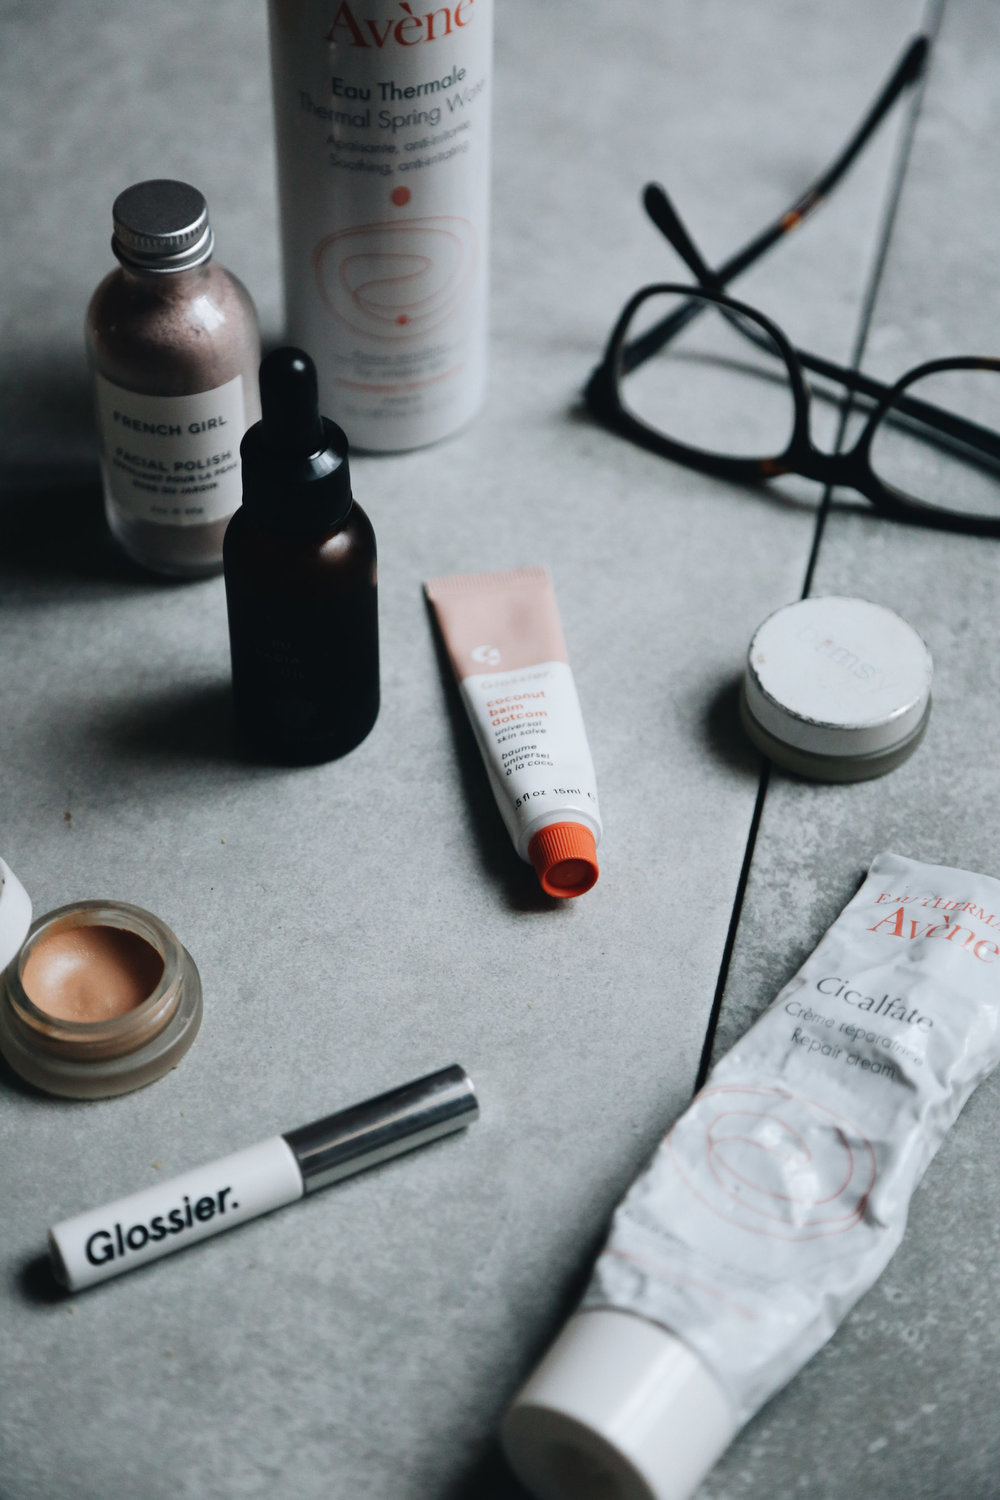 glossier and rms beauty.jpg